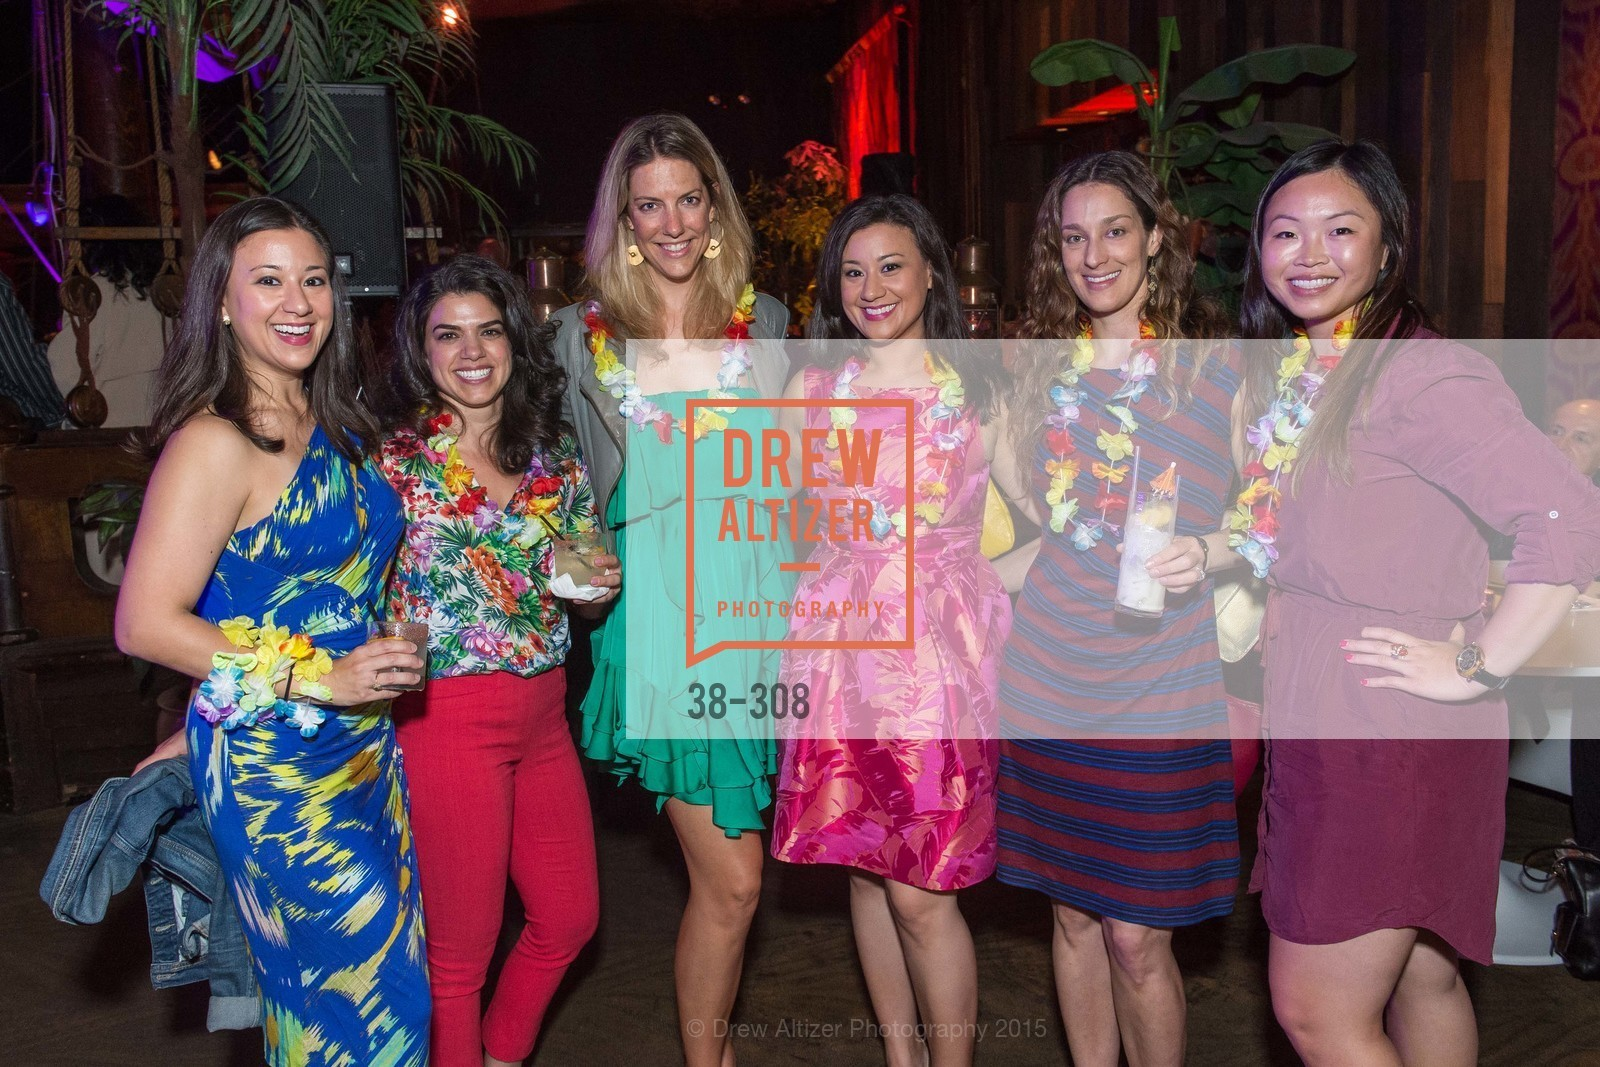 Melissa Farrar, Mary Kerriman, Kendra Jorgensen, Sheila Farrar, Brie Drever, Tiffany Mah, Tonga Room & Hurricane Bar Celebrates 70 Years of Tiki Glory, Fairmont, September 23rd, 2015,Drew Altizer, Drew Altizer Photography, full-service agency, private events, San Francisco photographer, photographer california